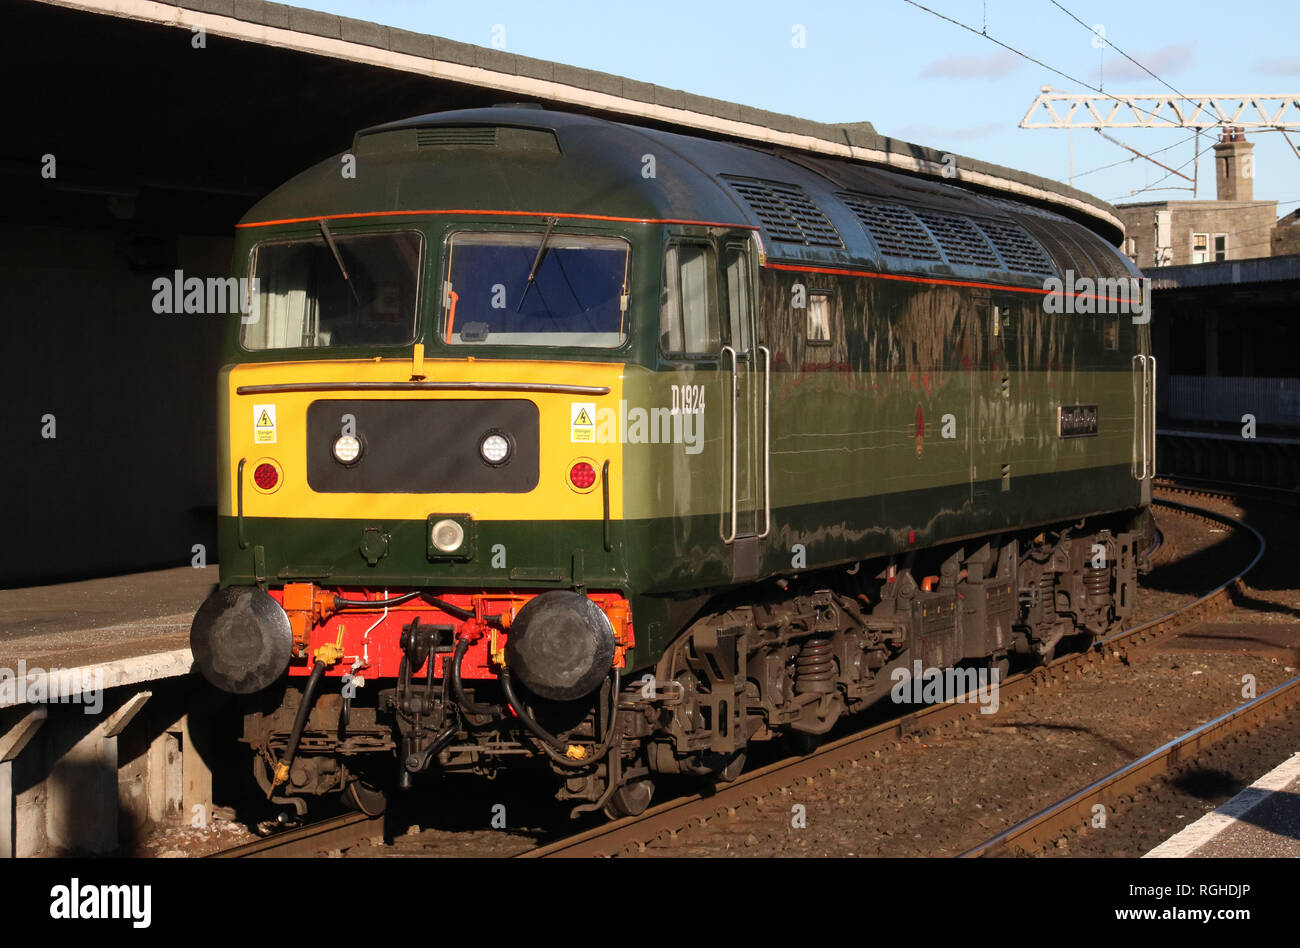 Class 47 diesel-electric locomotive, D1924, in two tone green livery passing through Carnforth station on a light engine movement on 28th January 2019 - Stock Image